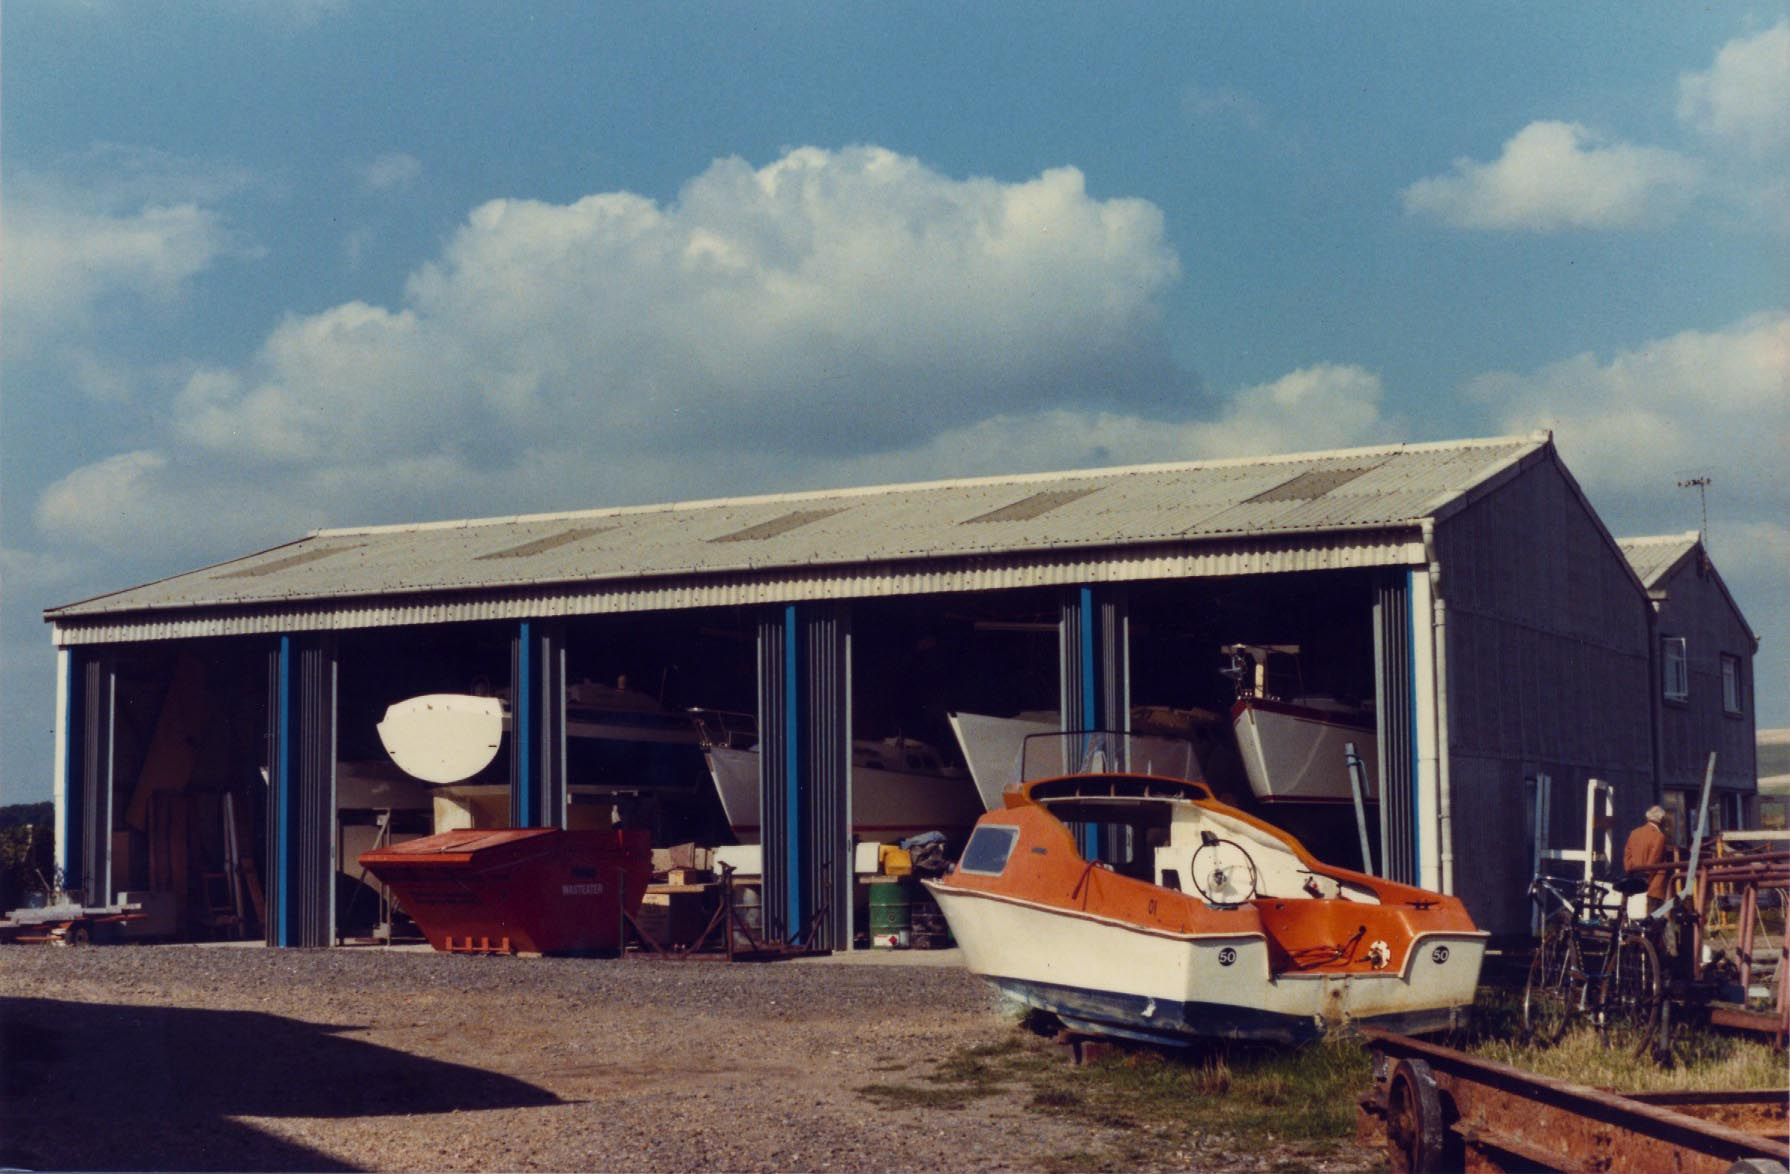 The Pheon Yachts Ltd Factory